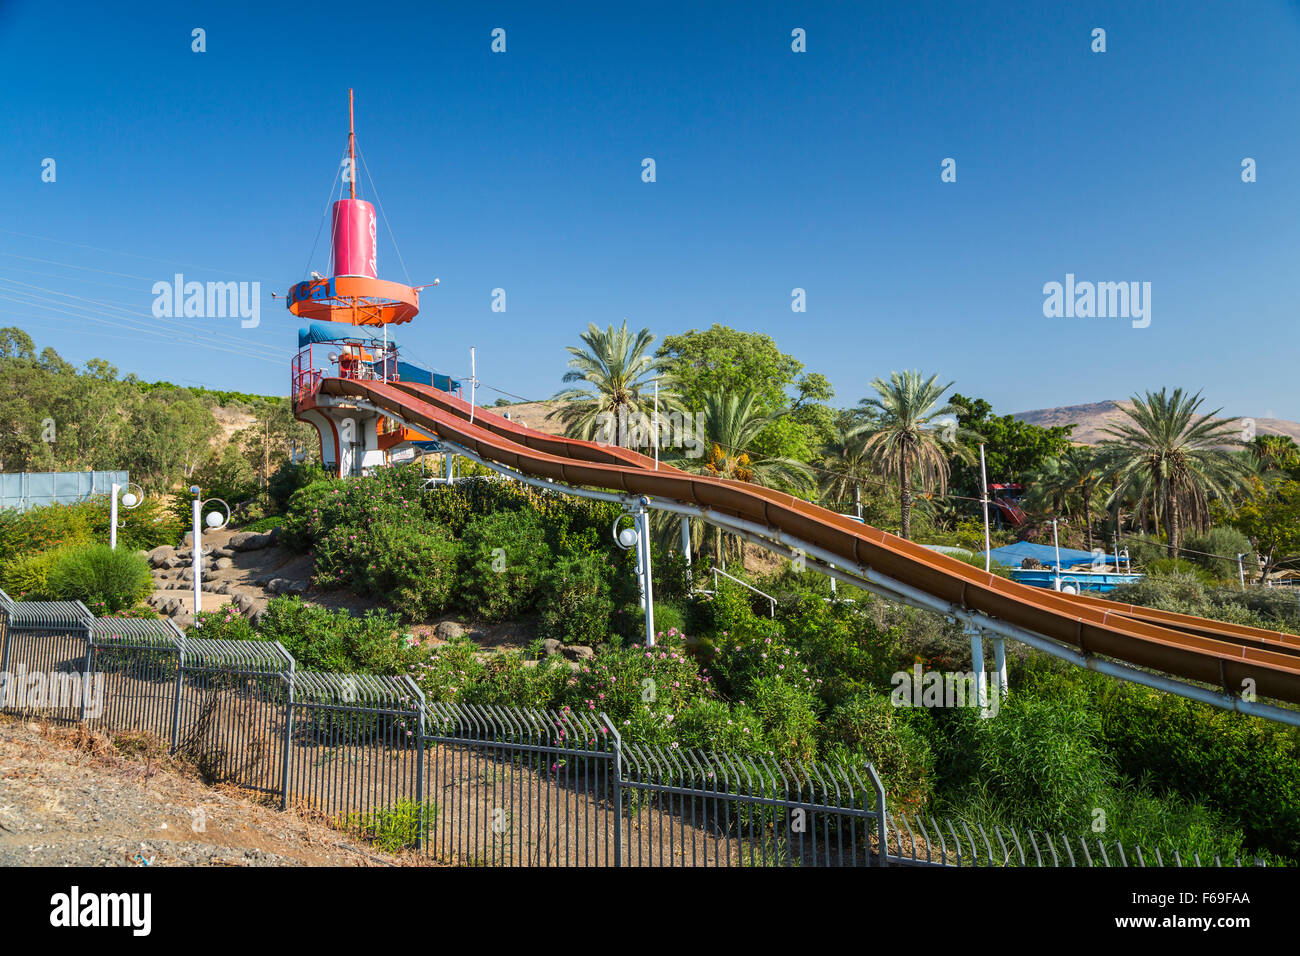 A water slide park in the Golan of Israel, Middle East. - Stock Image